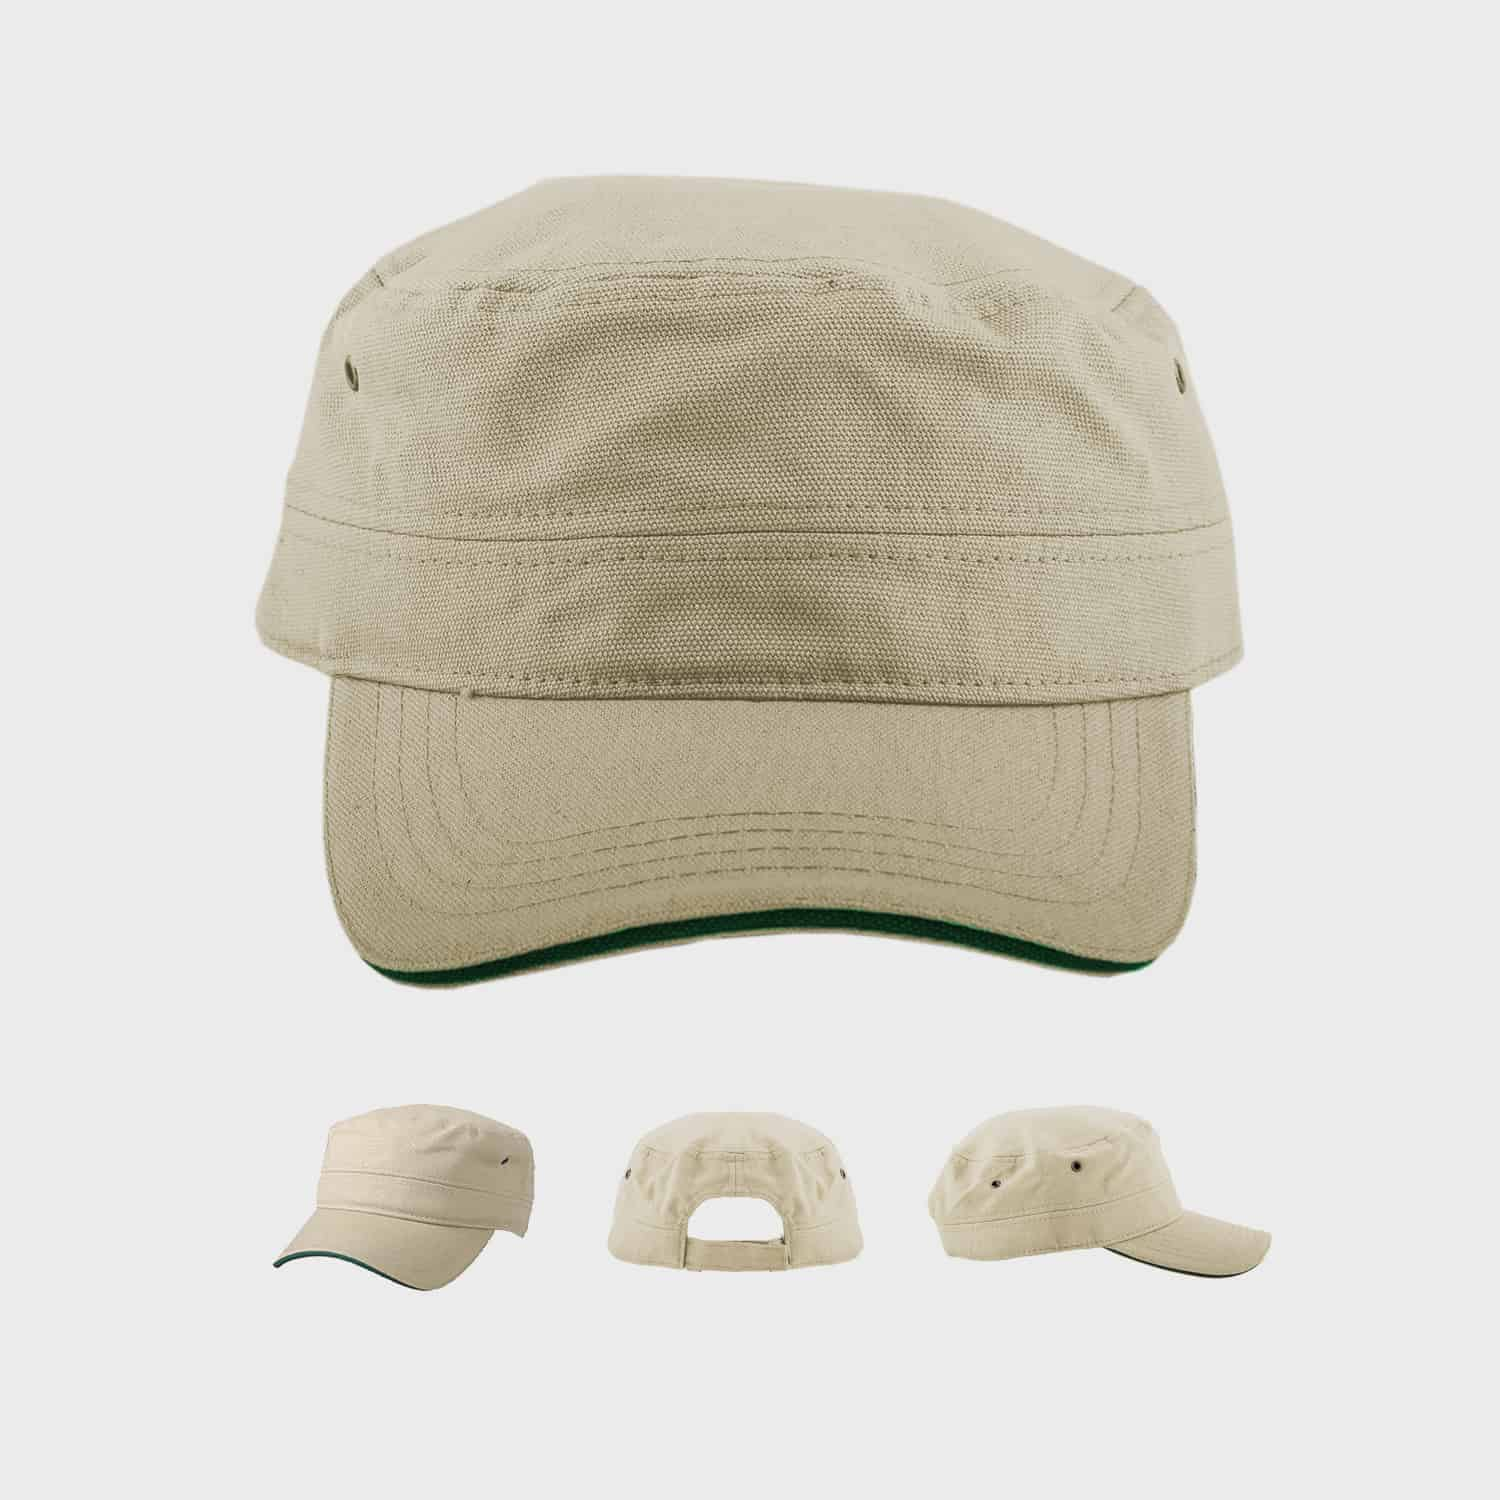 Cap-Military-Sandwich-Cap-kaufen-besticken_StickManufaktur